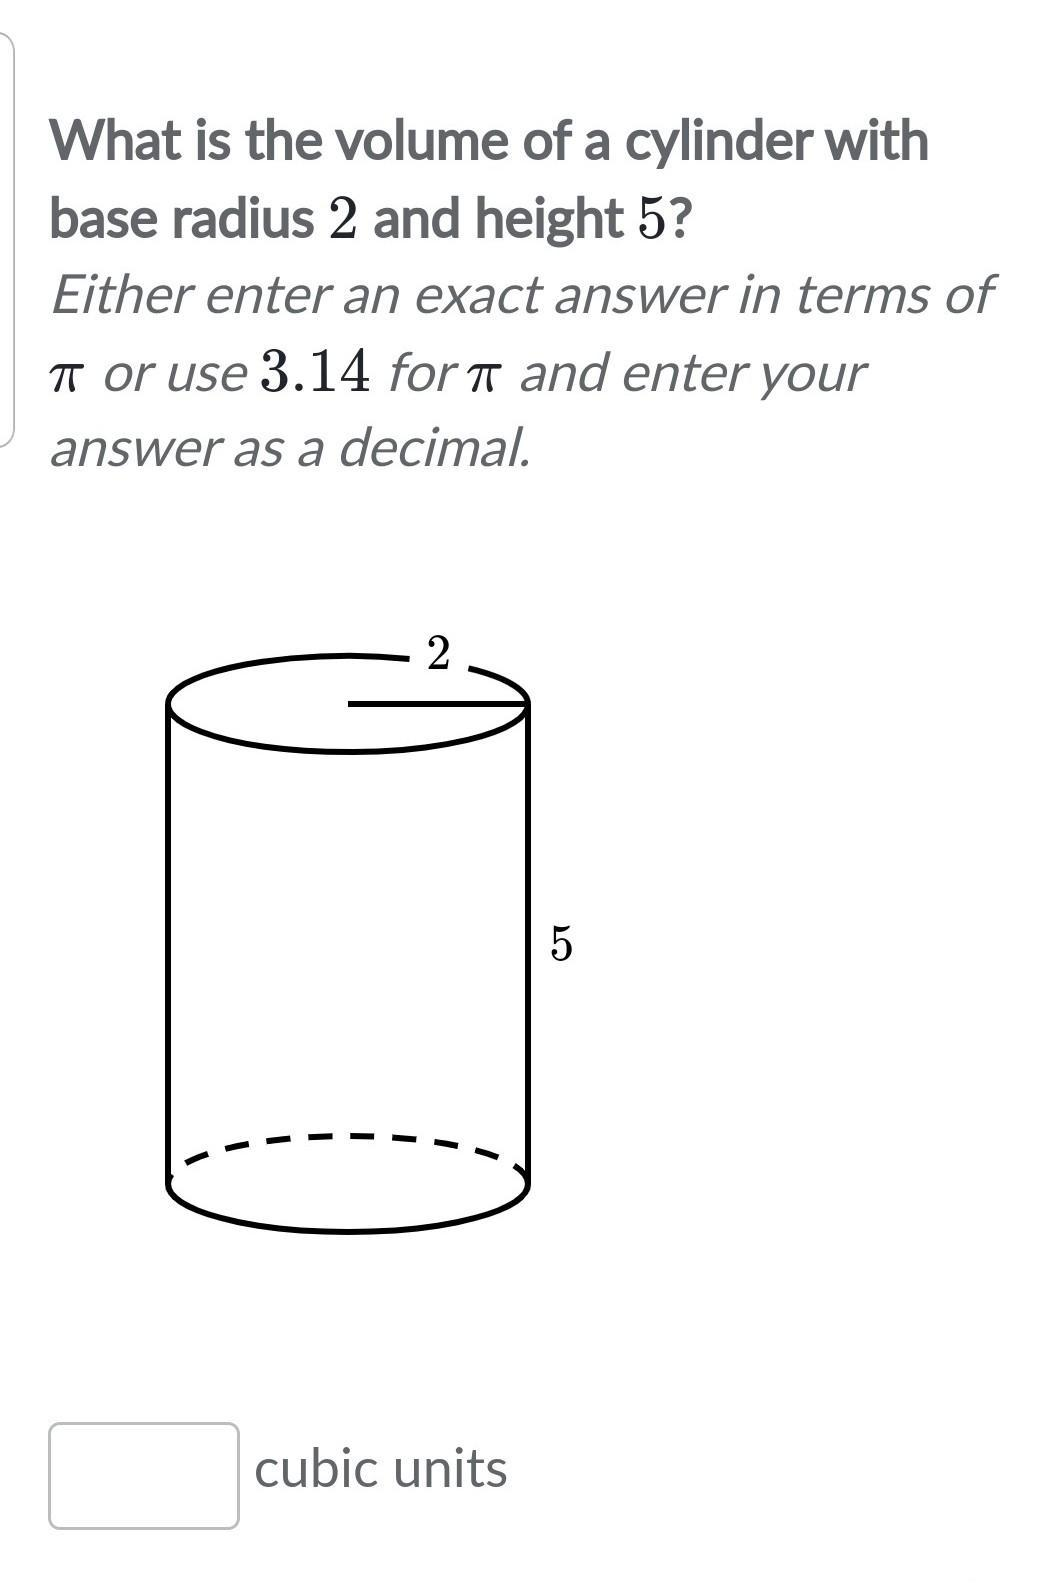 What Is The Volume Of A Cylinder With Base Radius 2 And